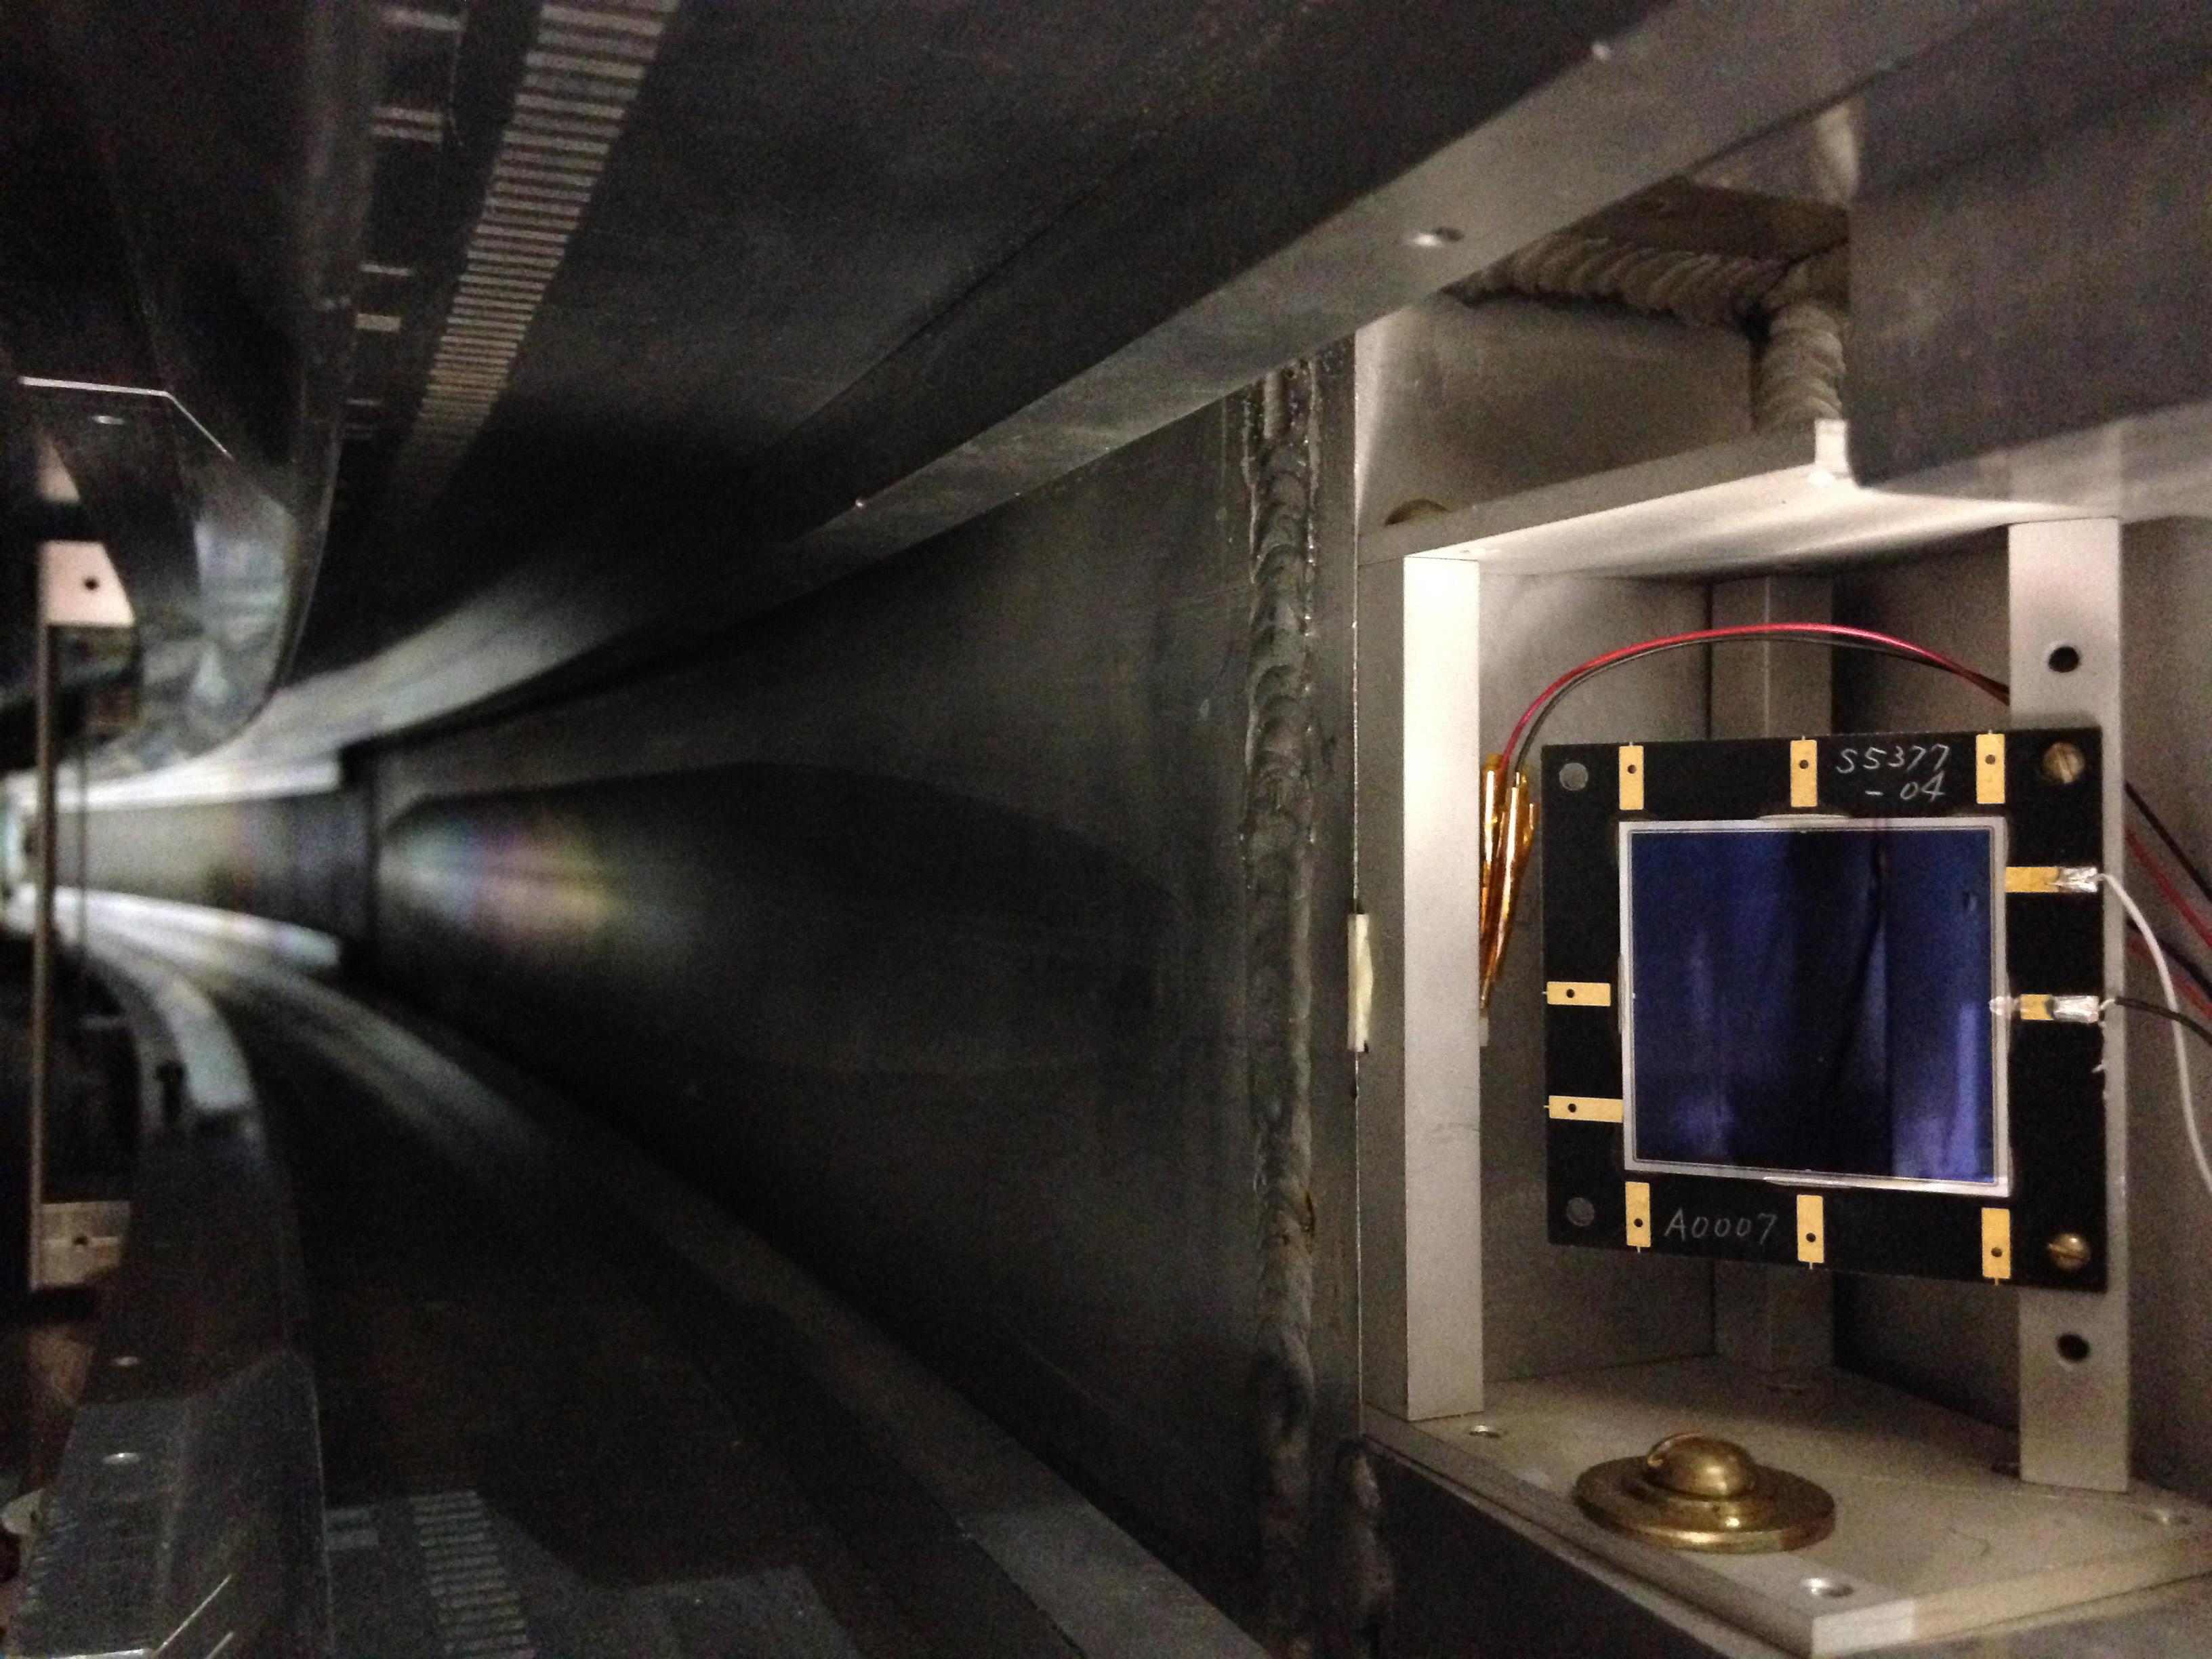 You are looking at a silicon detector at the end of the inflector region of the Muon g-2 experiment. This region is the area in which a specialized magnet bends muons after they exit the Muon Delivery Ring (the former Antiproton Debuncher) and enter the Muon g-2 storage ring, which curves to the left in the picture. This detector was used in the Brookhaven National Laboratory's version of this experiment to record how many muons leave the inflector region. Photo: Erik Ramberg, PPD